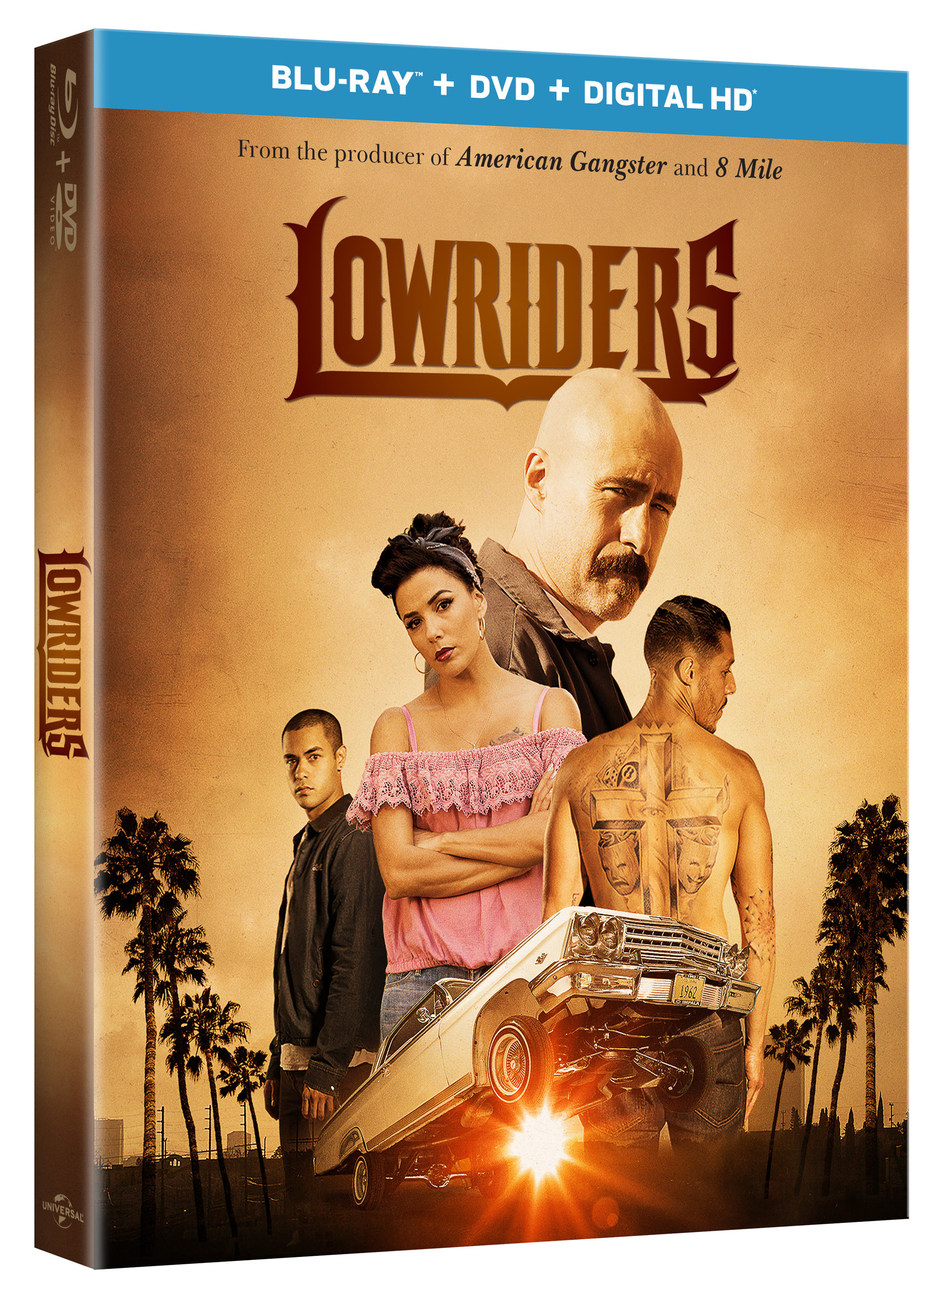 From Universal Pictures Home Entertainment: Lowriders